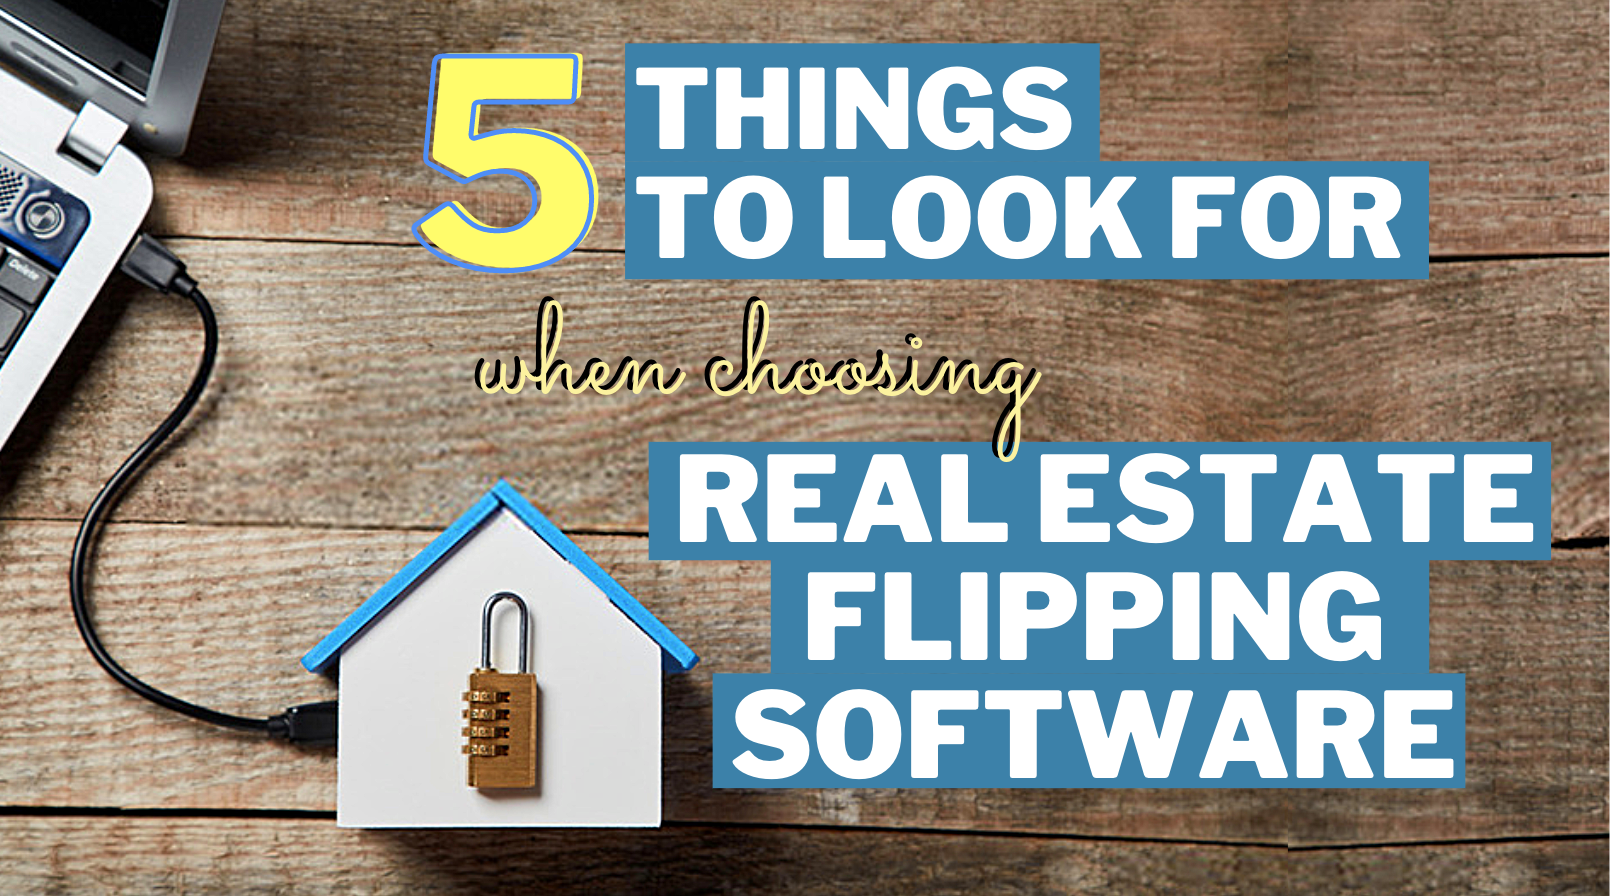 5 Things to Look For When Choosing Real Estate Software